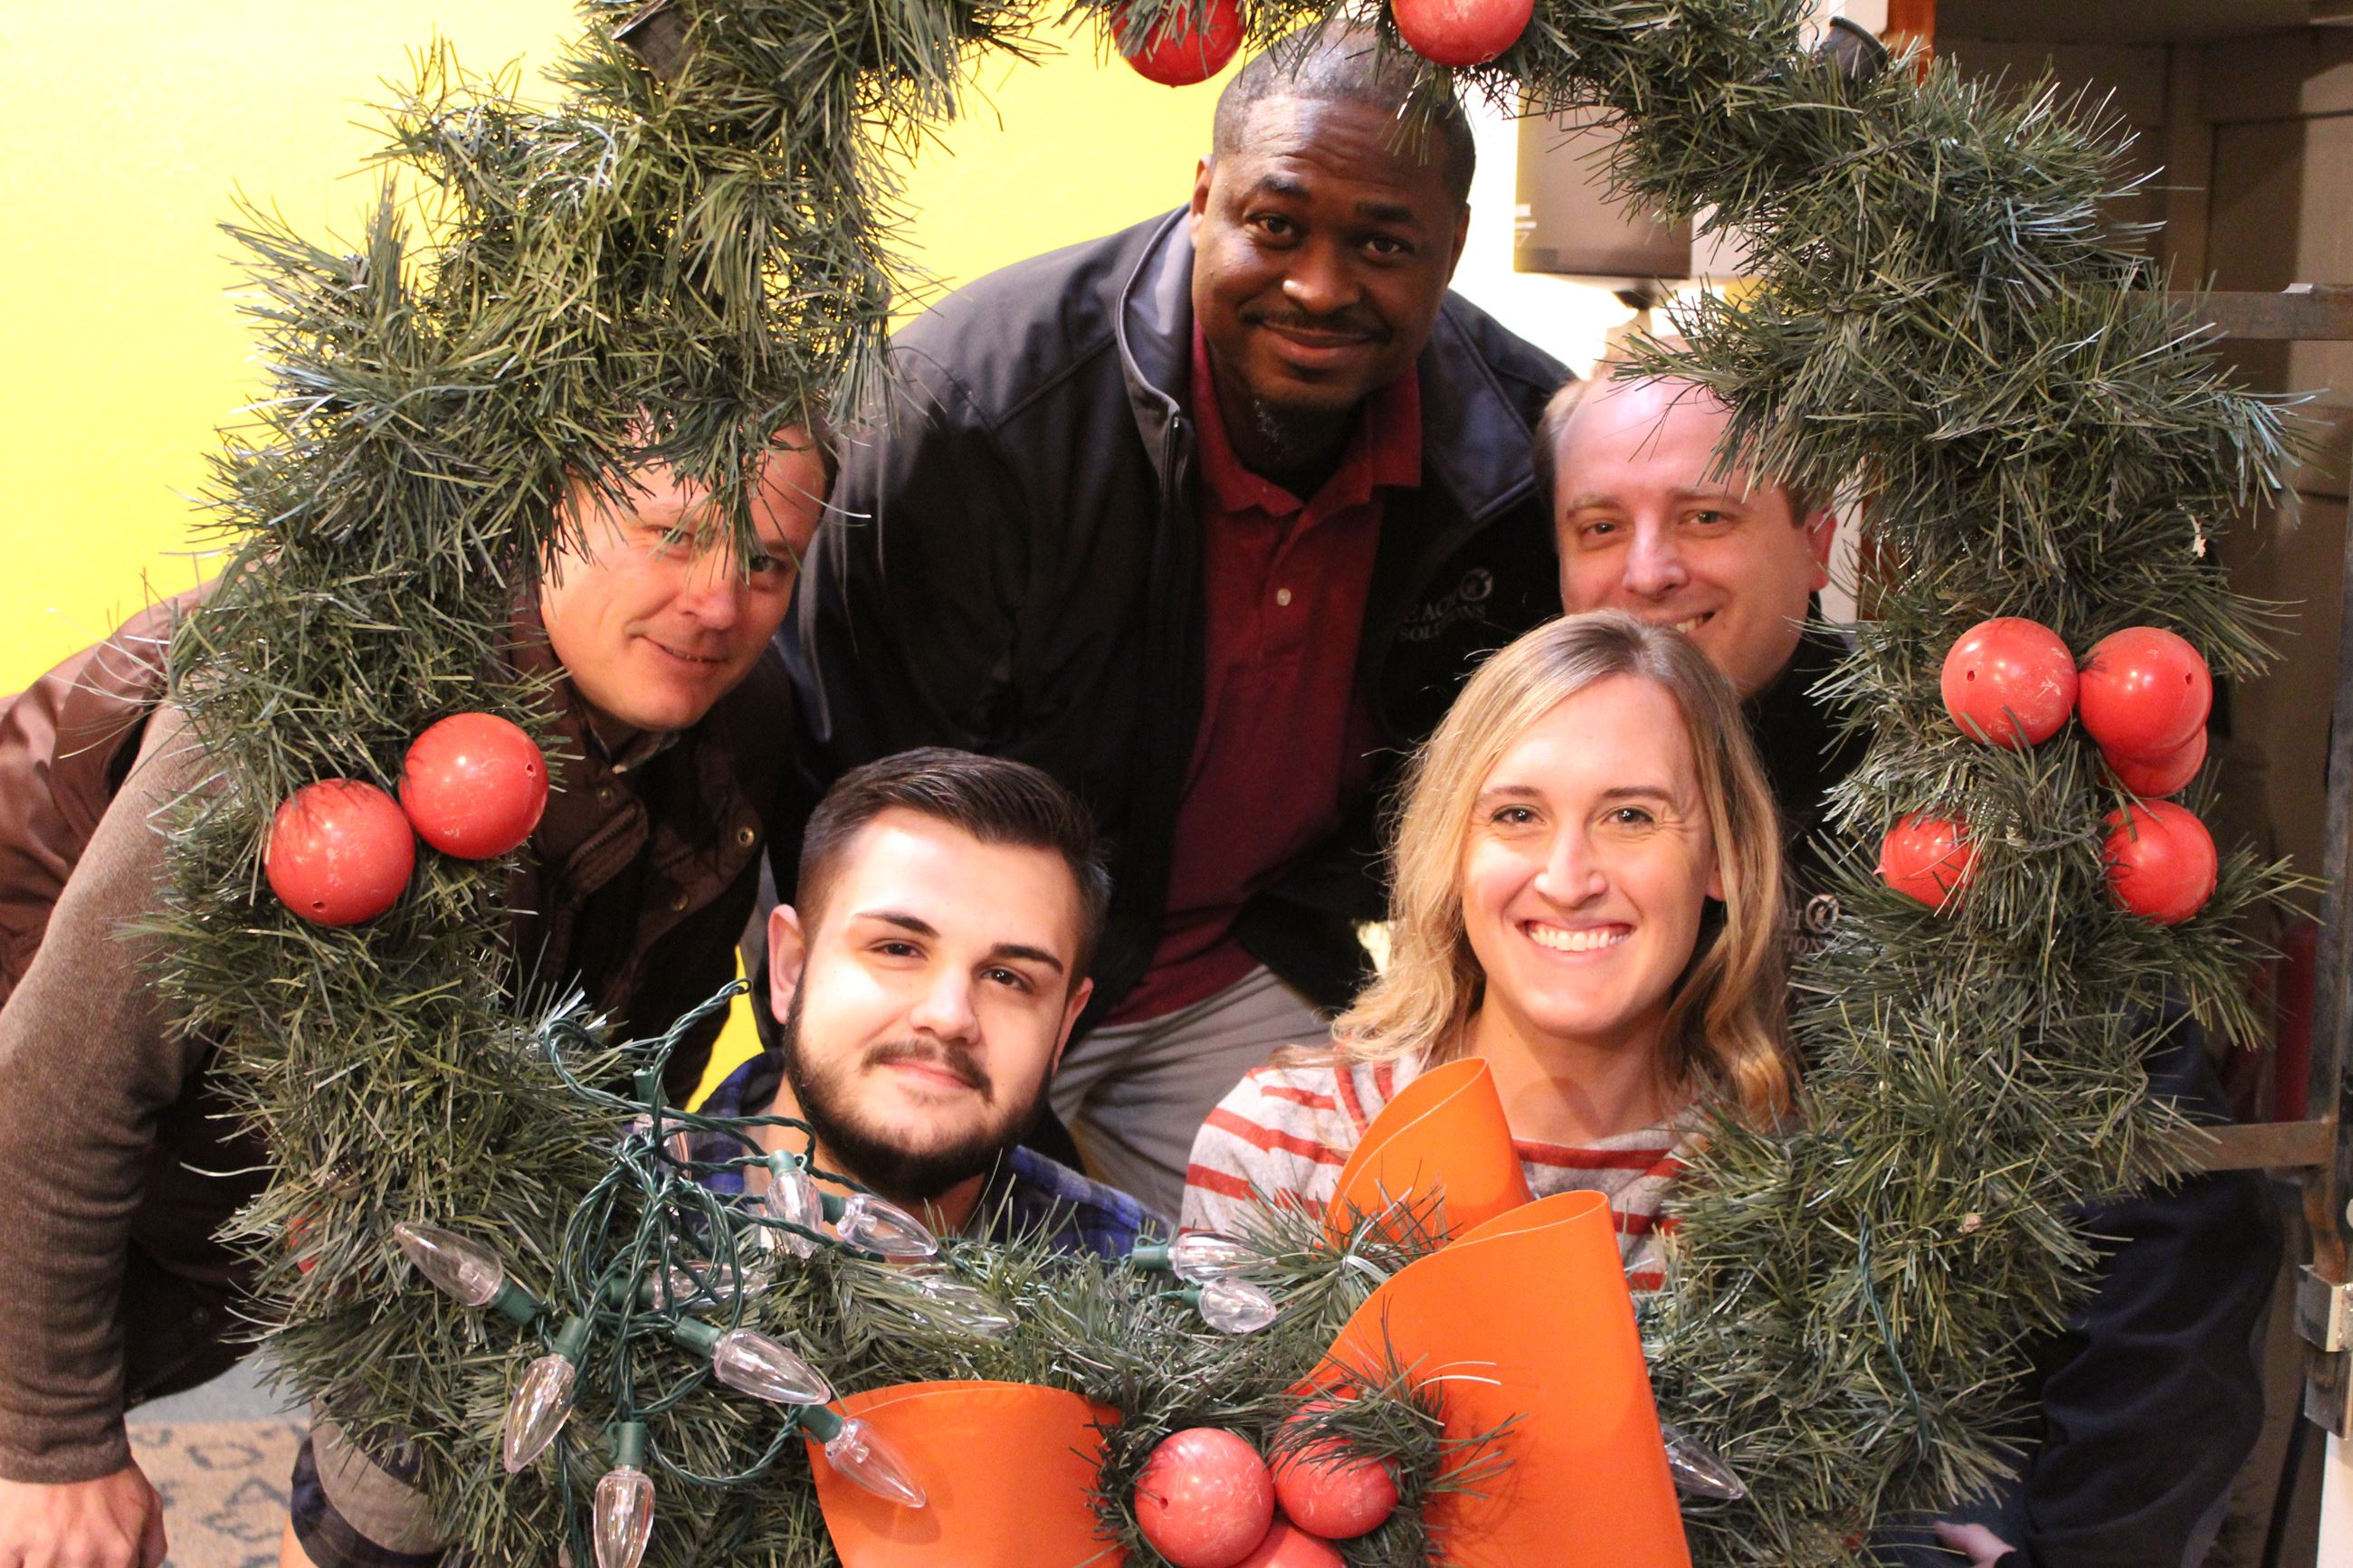 Five business representatives pose with a giant Christmas wreath